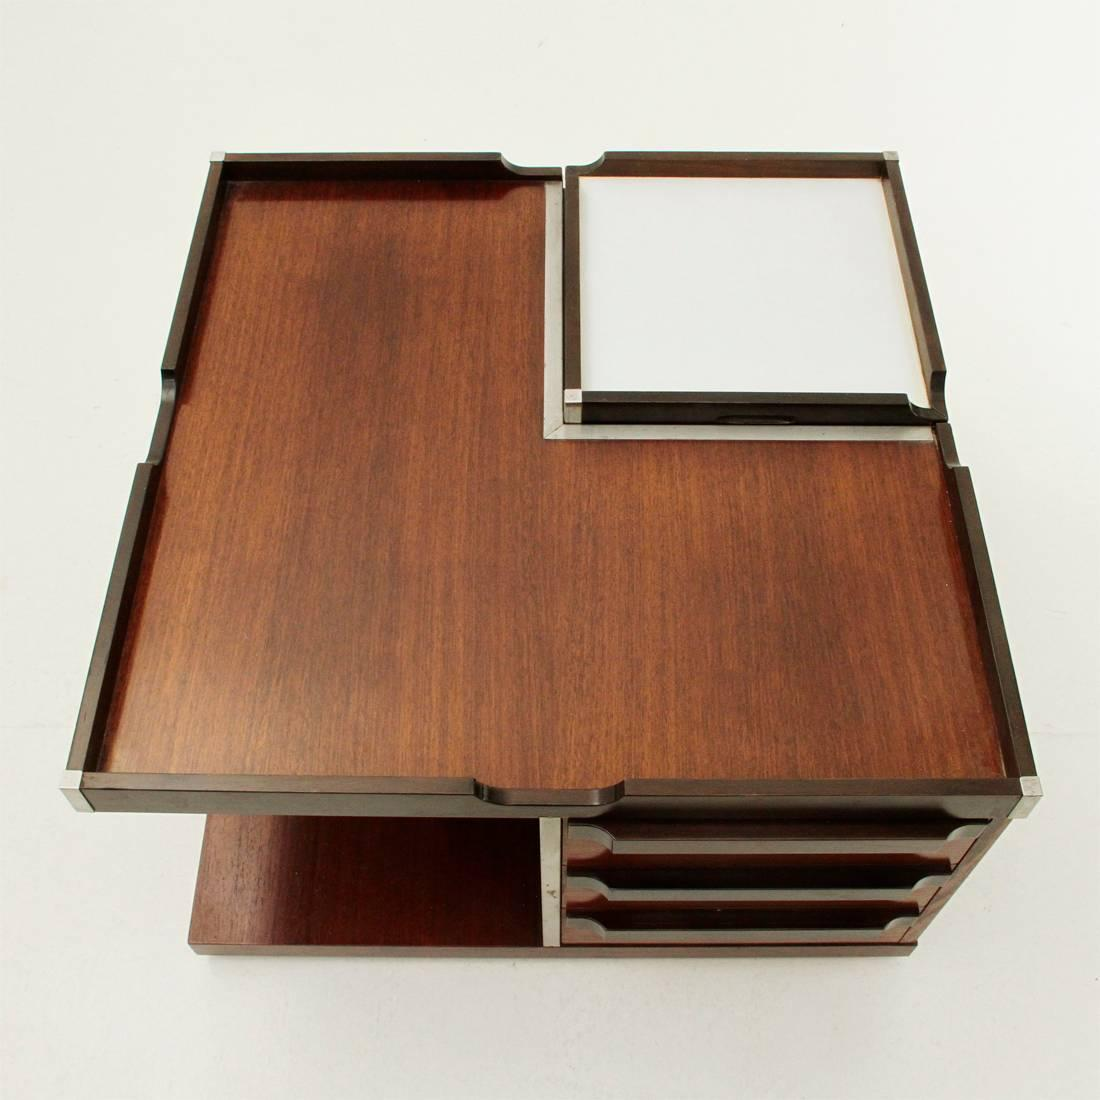 Coffee Table Produced By Fiarm In The 1970s. Square Table With Four  Compartments: One